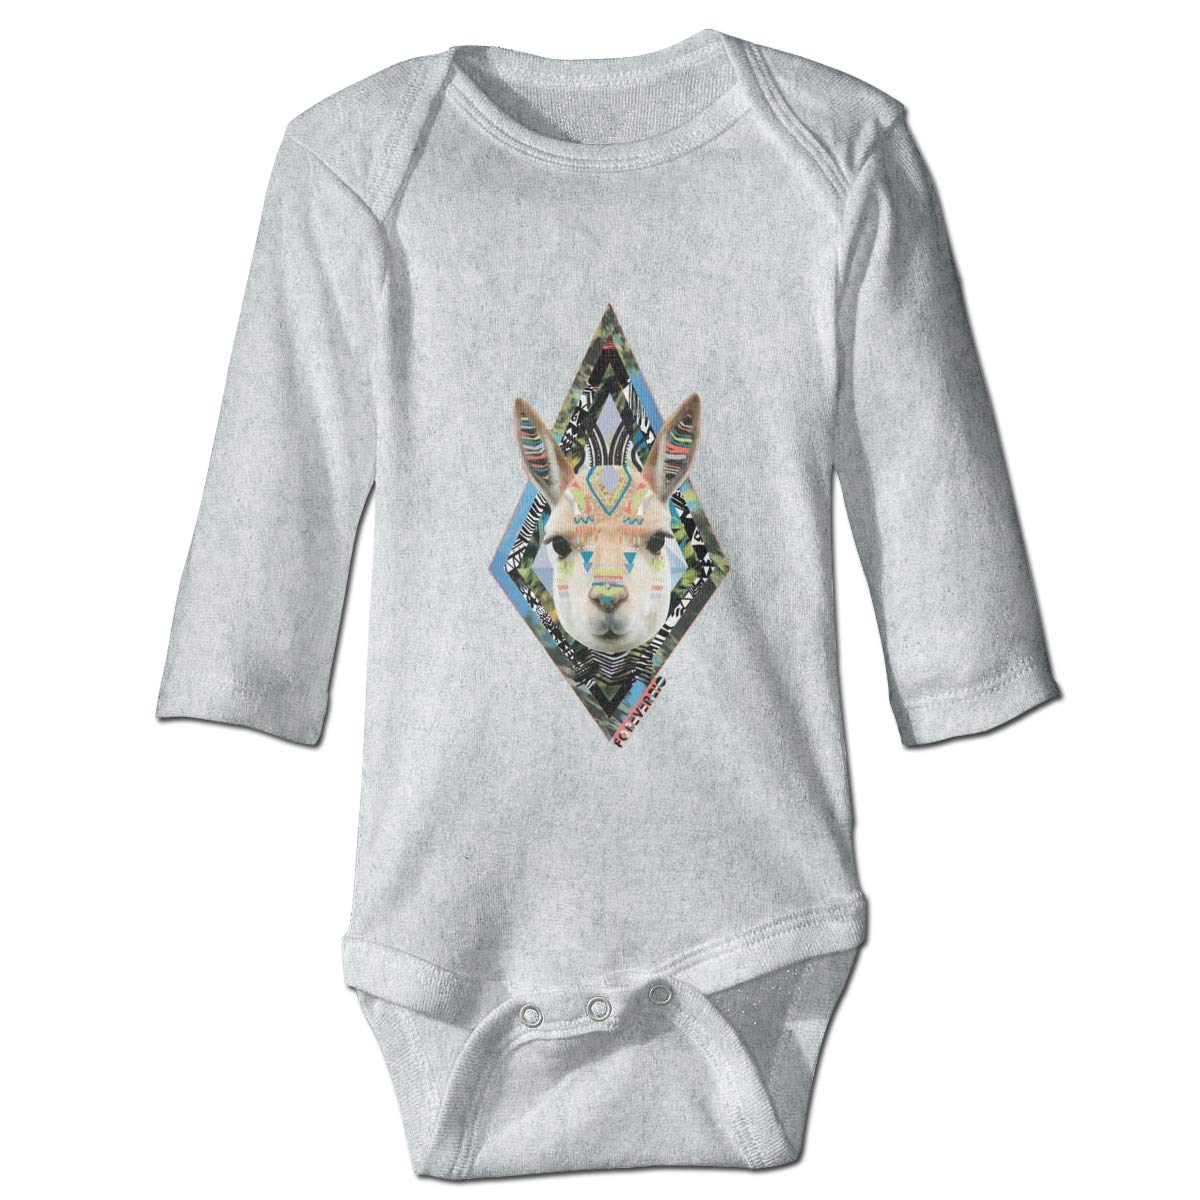 Diamond Grass Mud Horse Graphic Newborn Baby Long Sleeve Bodysuit Romper Infant Summer Clothing